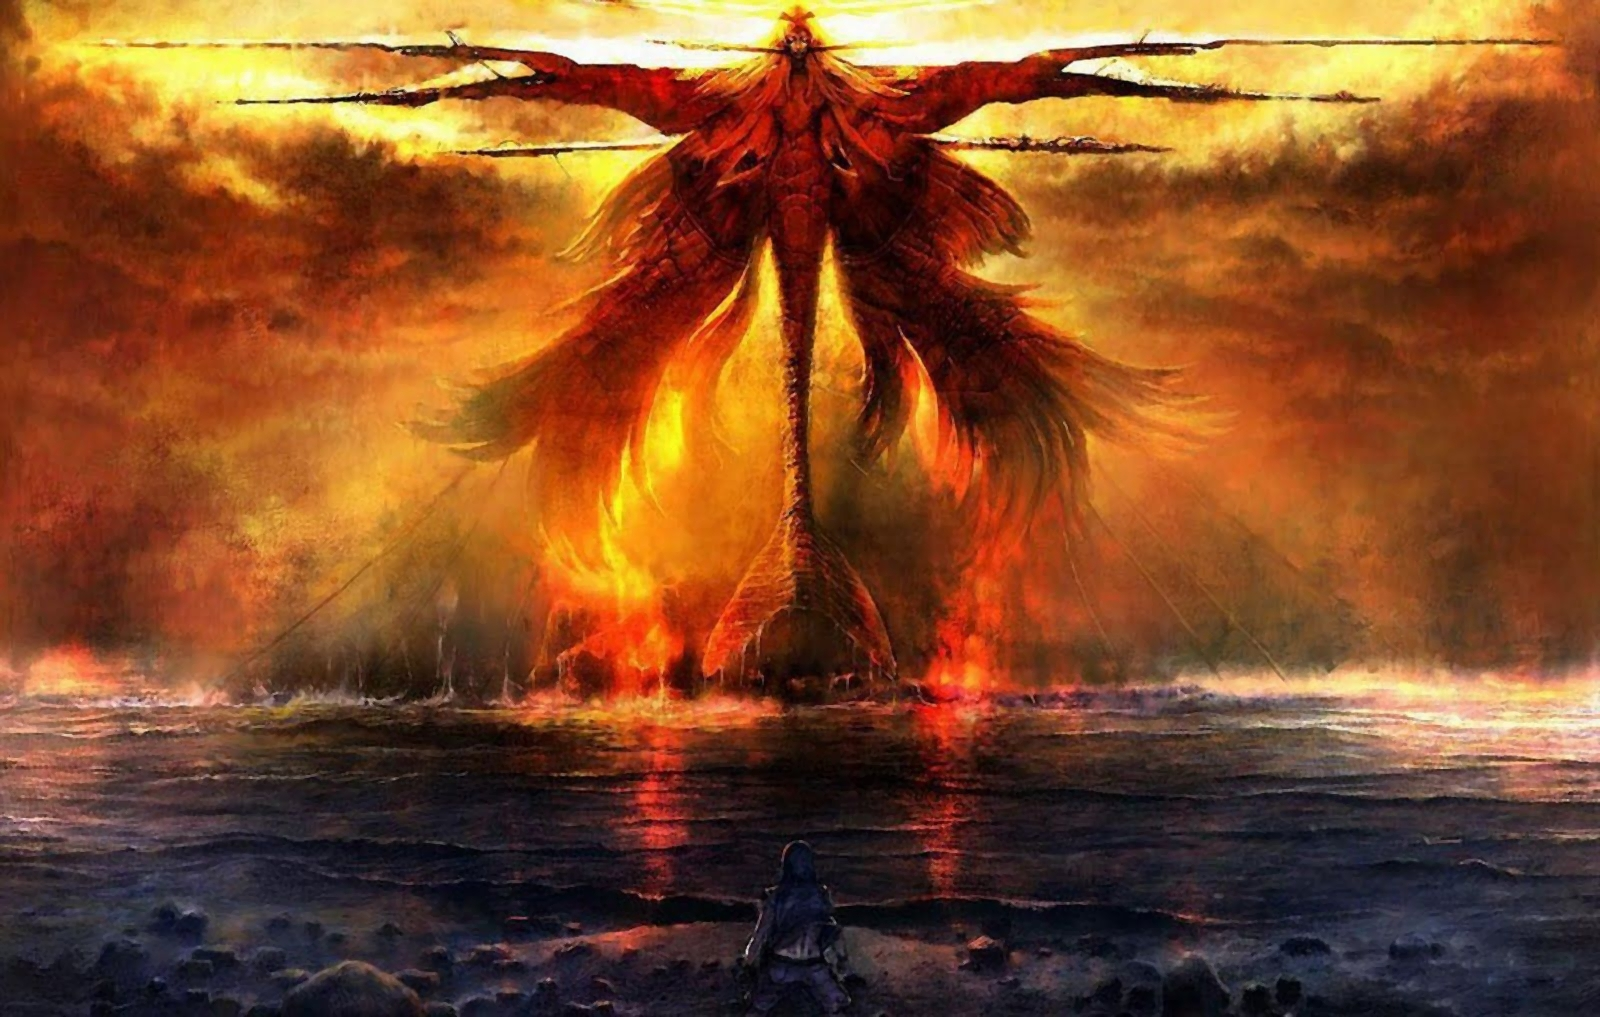 dragons and phoenix rising from ashes wallpapers - wallpaper cave